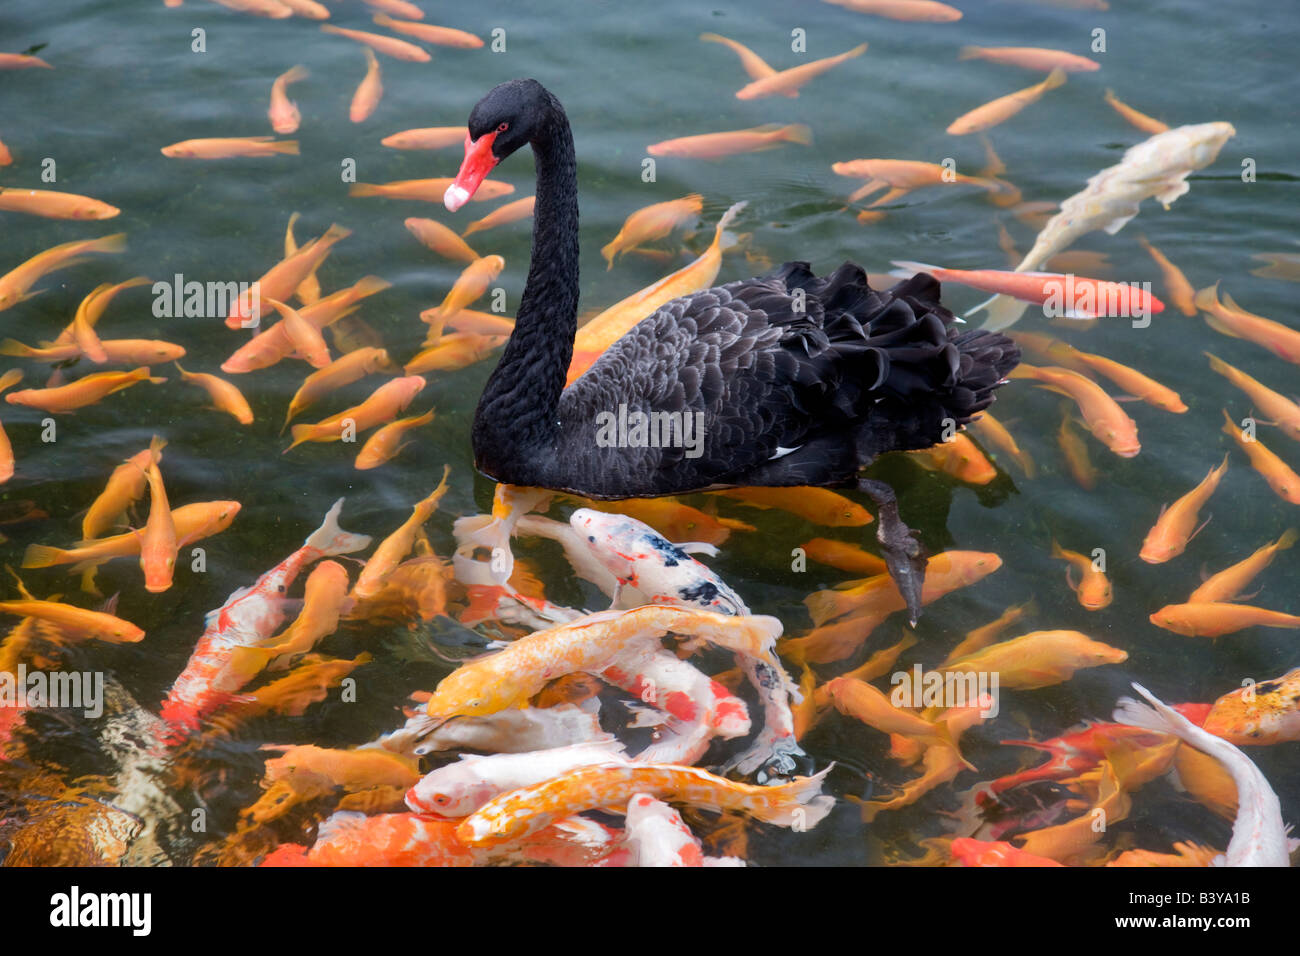 Black Swan and Koi fish Hyatt hotel Kauai Hawaii - Stock Image